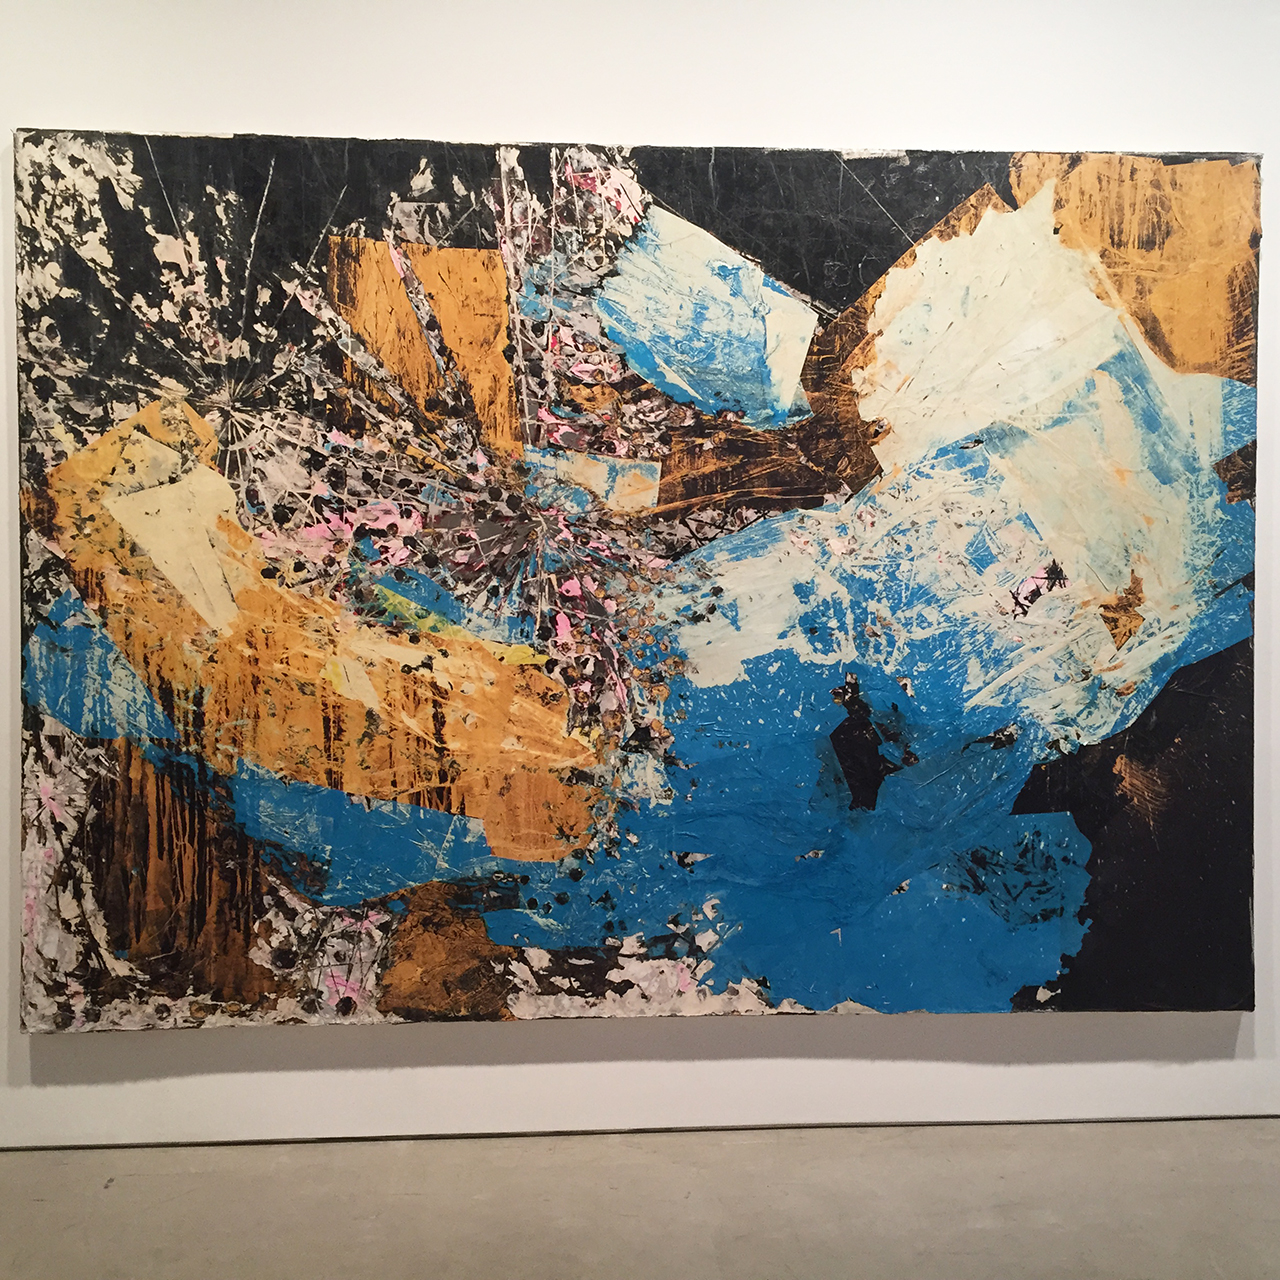 """Mark Bradford, """"Let's Walk to the Middle of the Ocean"""" (2015), mixed media on canvas, 259.1 x 365.8 cm / 102 x 144 in (all photos by the author for Hyperallergic)"""